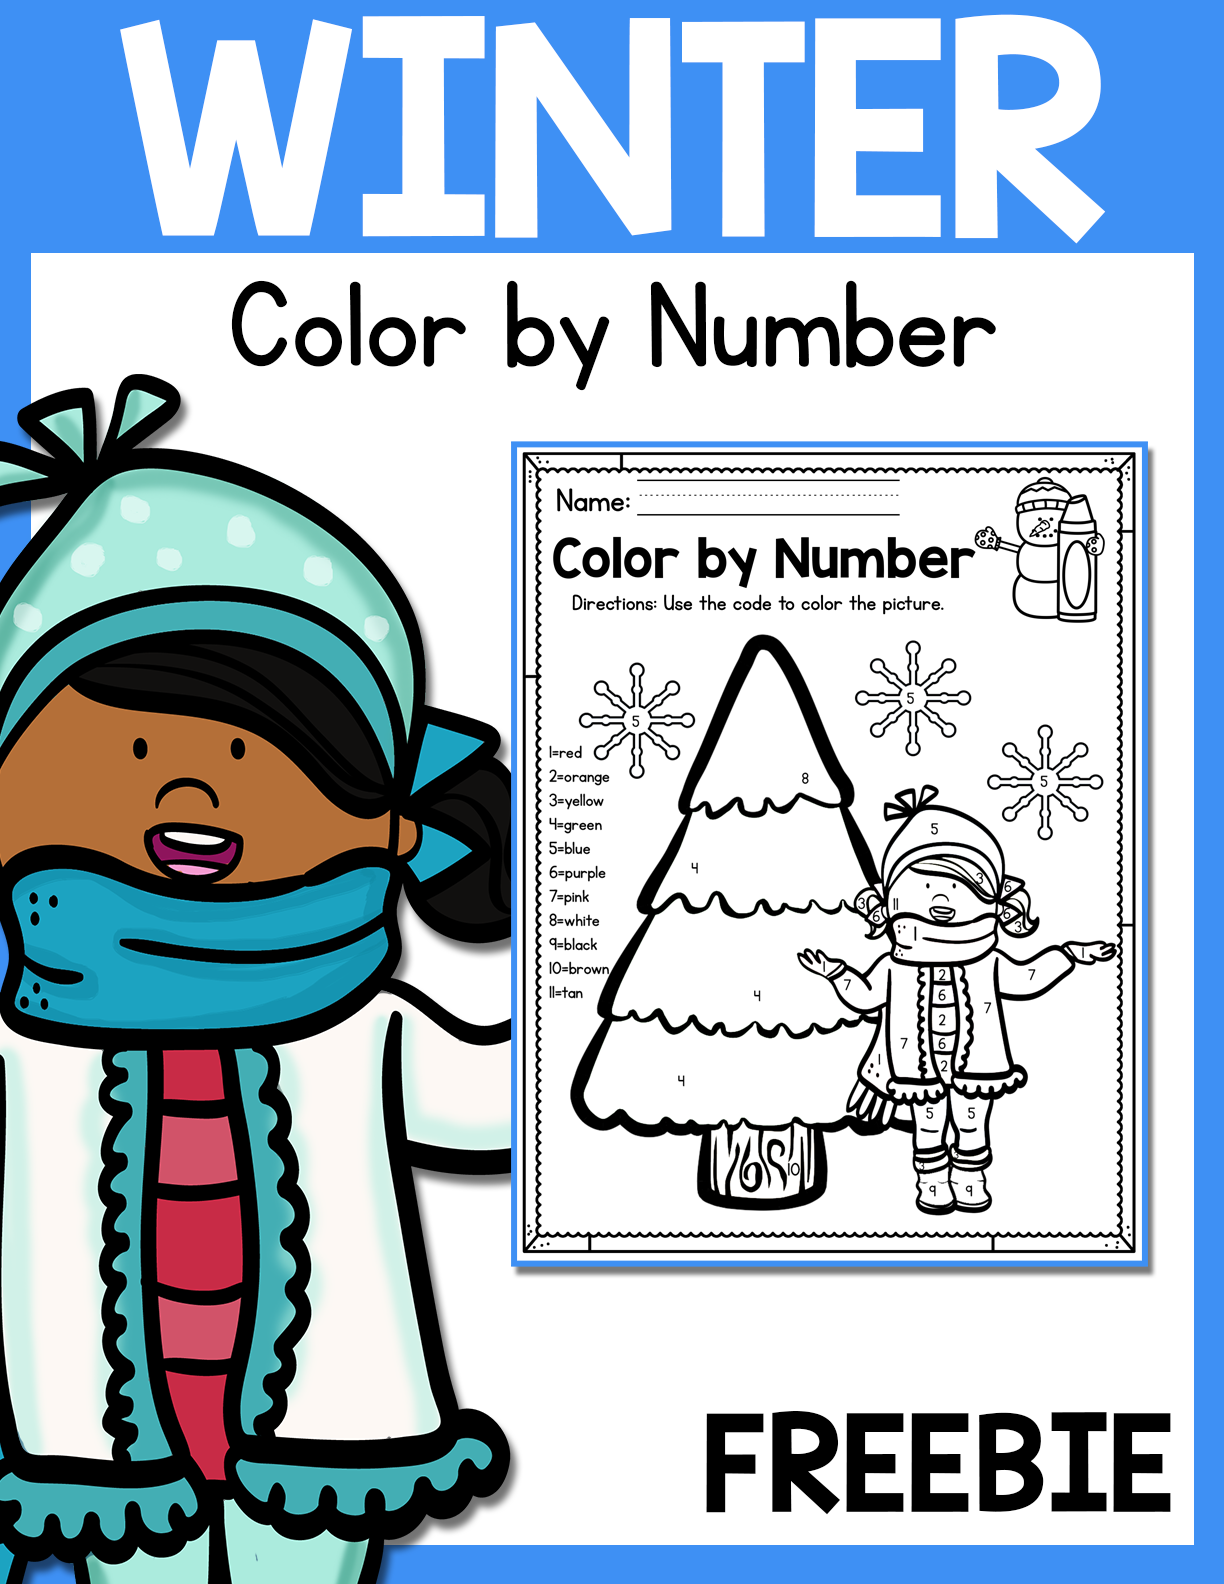 Freebie Winter Color By Number Printable